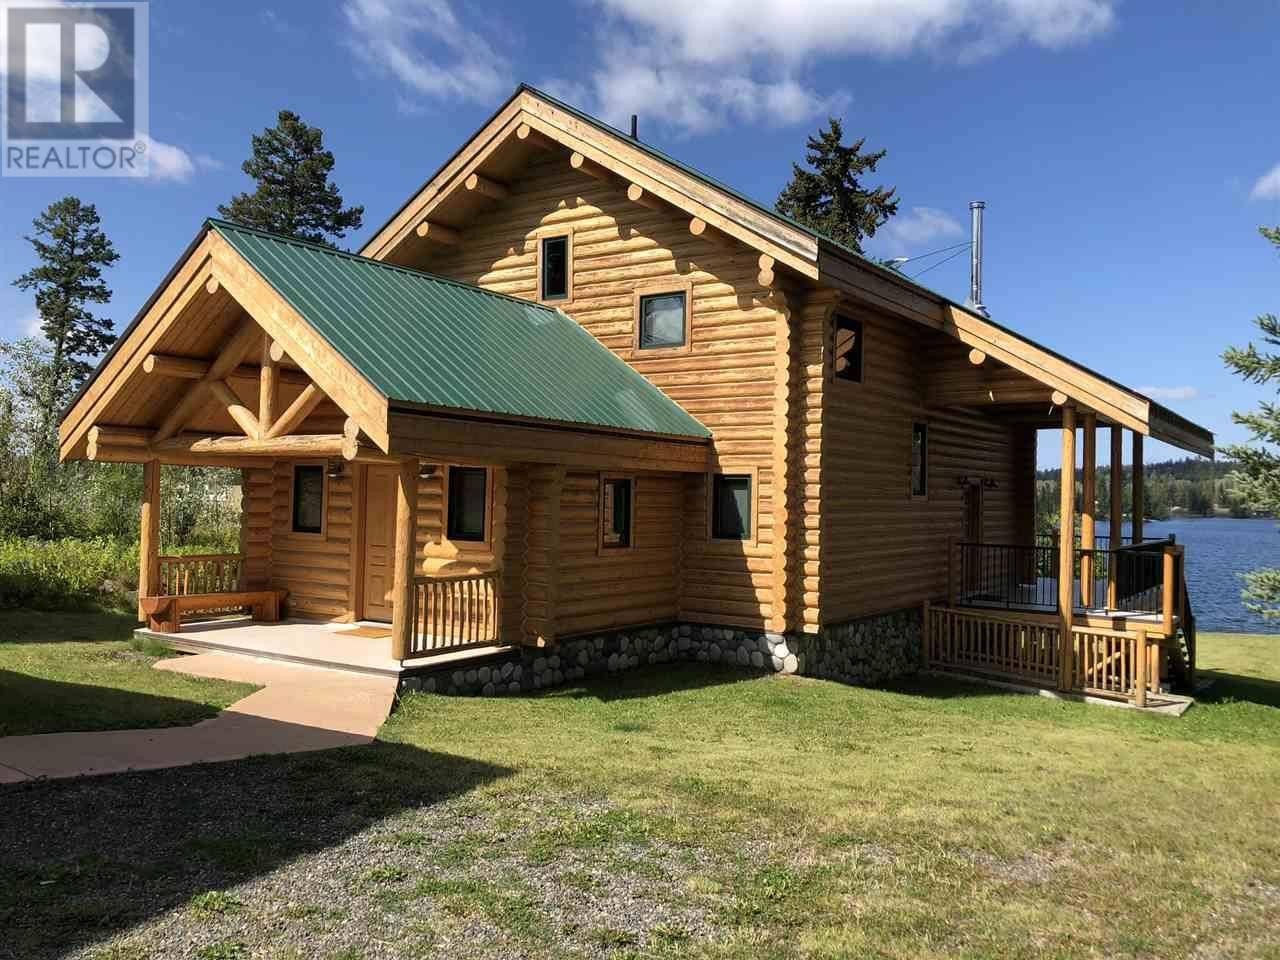 House for sale at 7577 Beazely Rd Deka Lake / Sulphurous / Hathaway Lakes British Columbia - MLS: R2384527